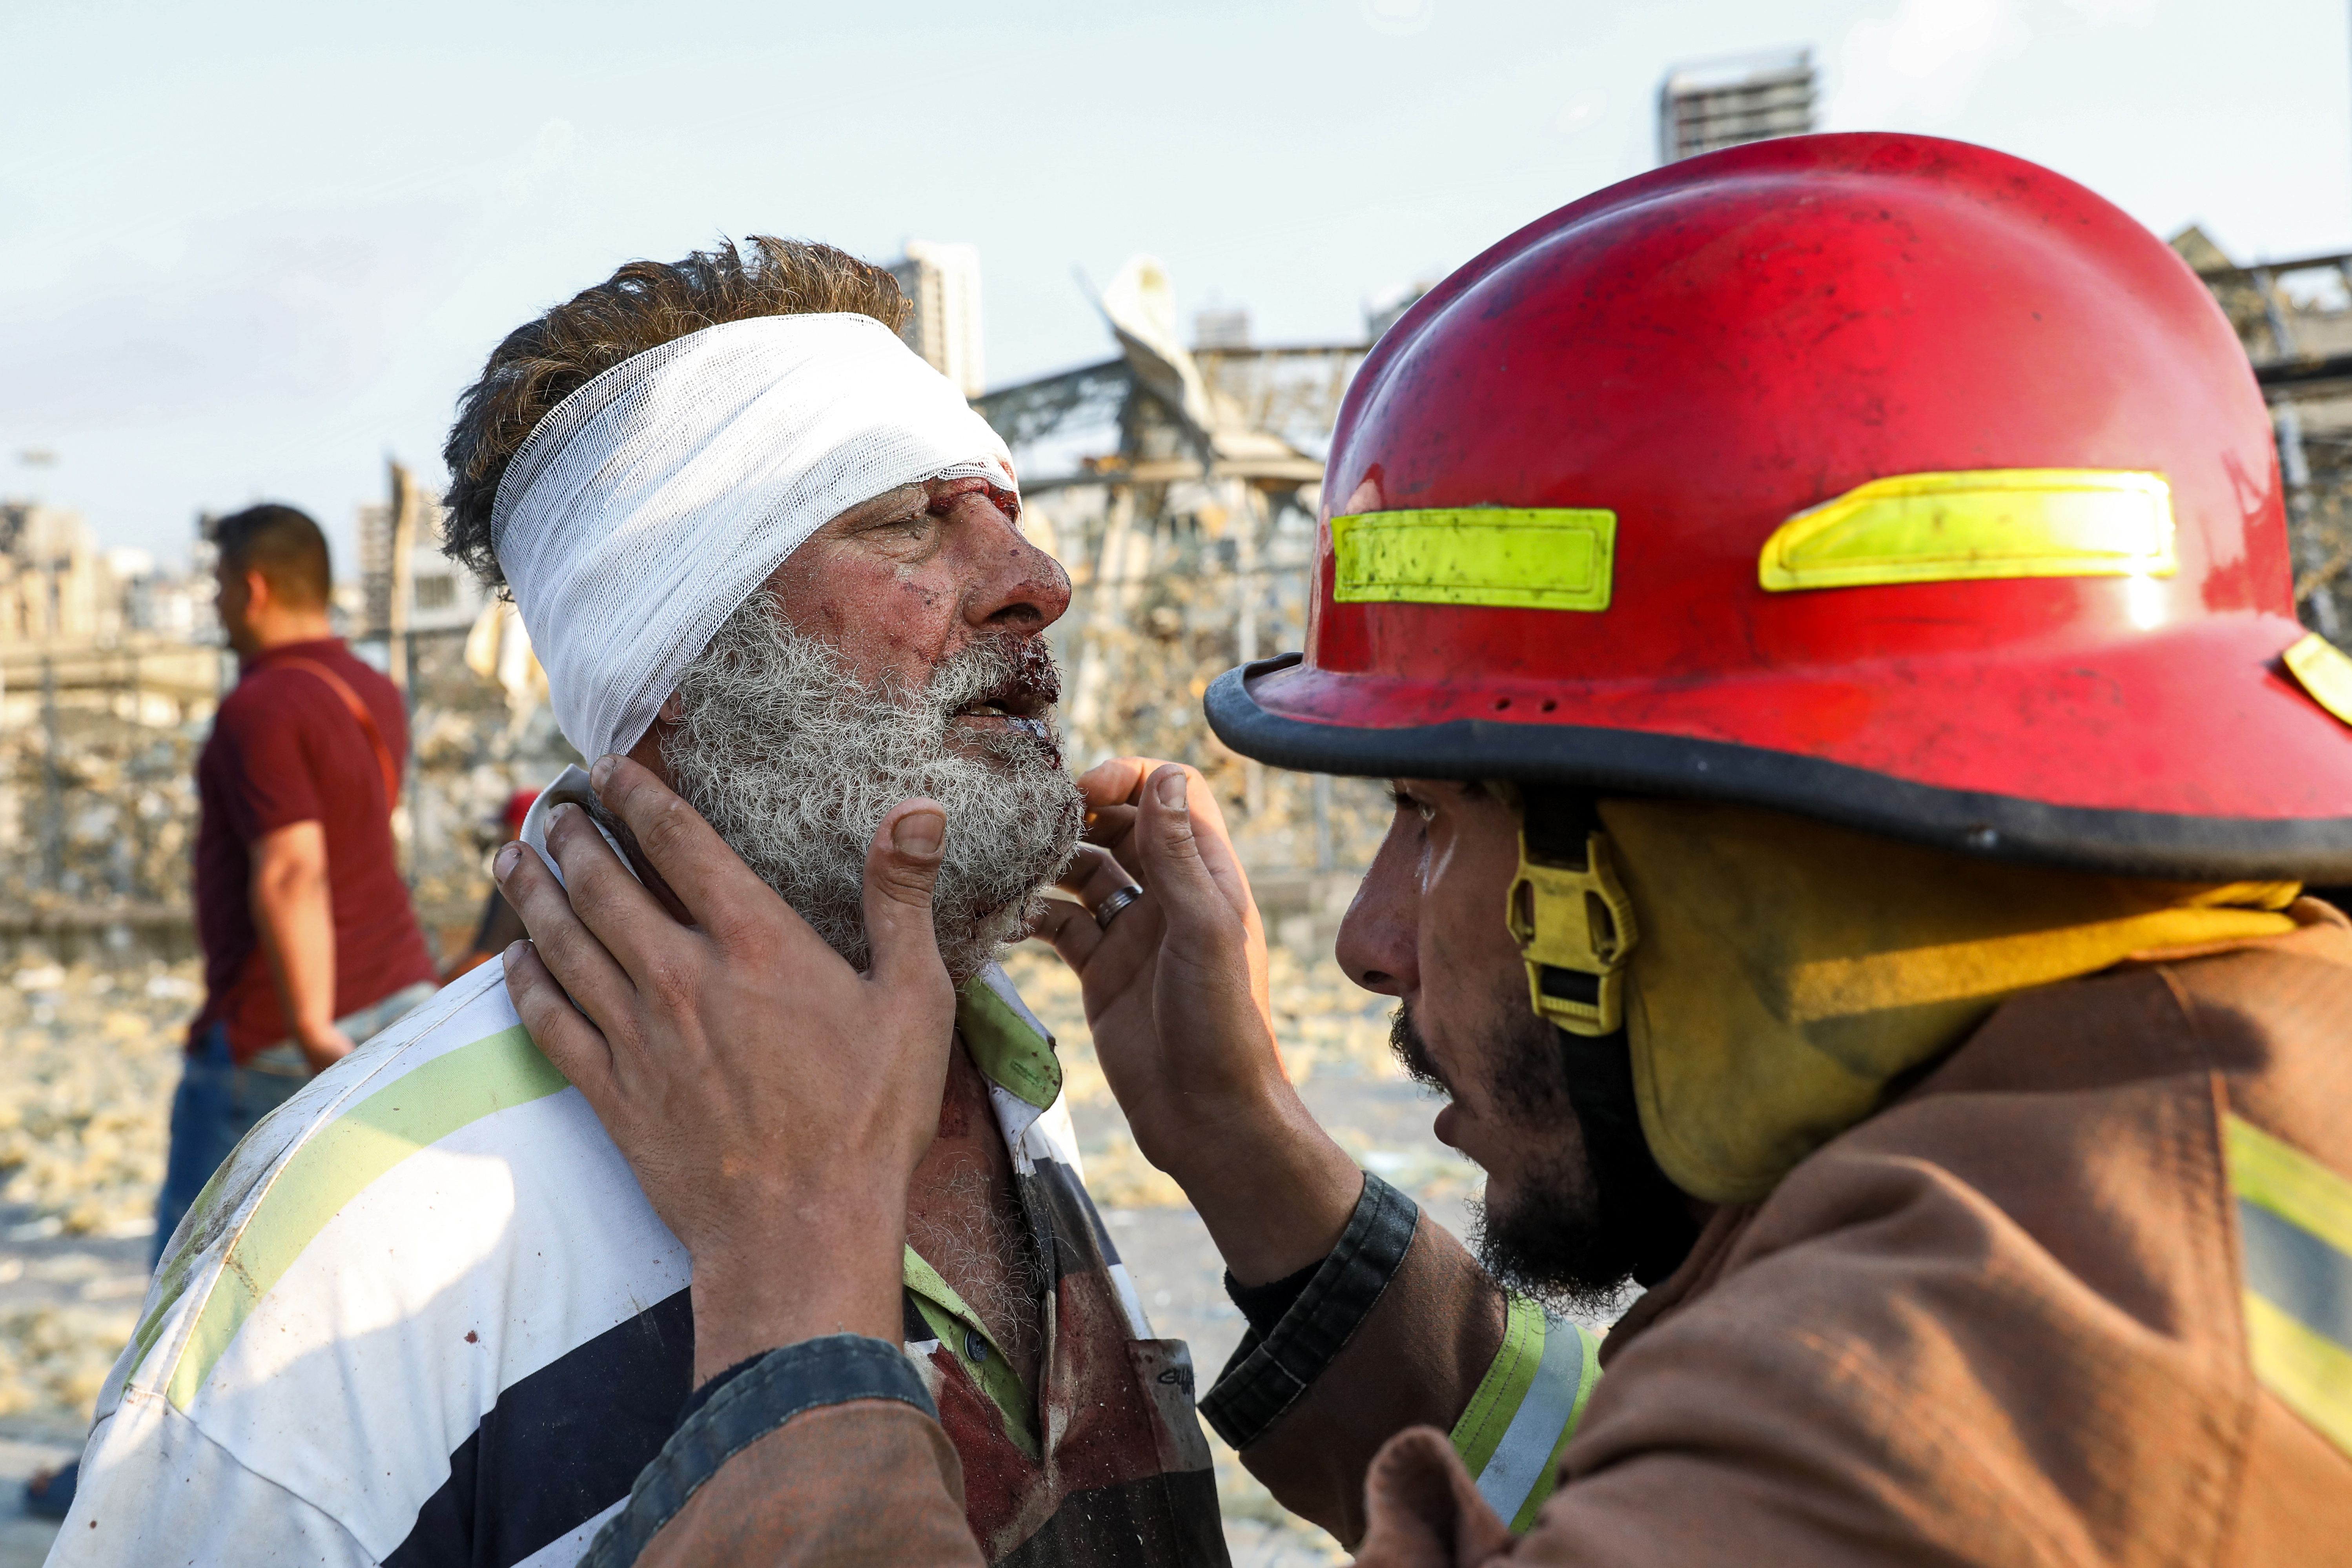 A wounded man is checked by a fireman near the scene of an explosion in Beirut on August 4, 2020. (Photo by ANWAR AMRO/AFP via Getty Images)